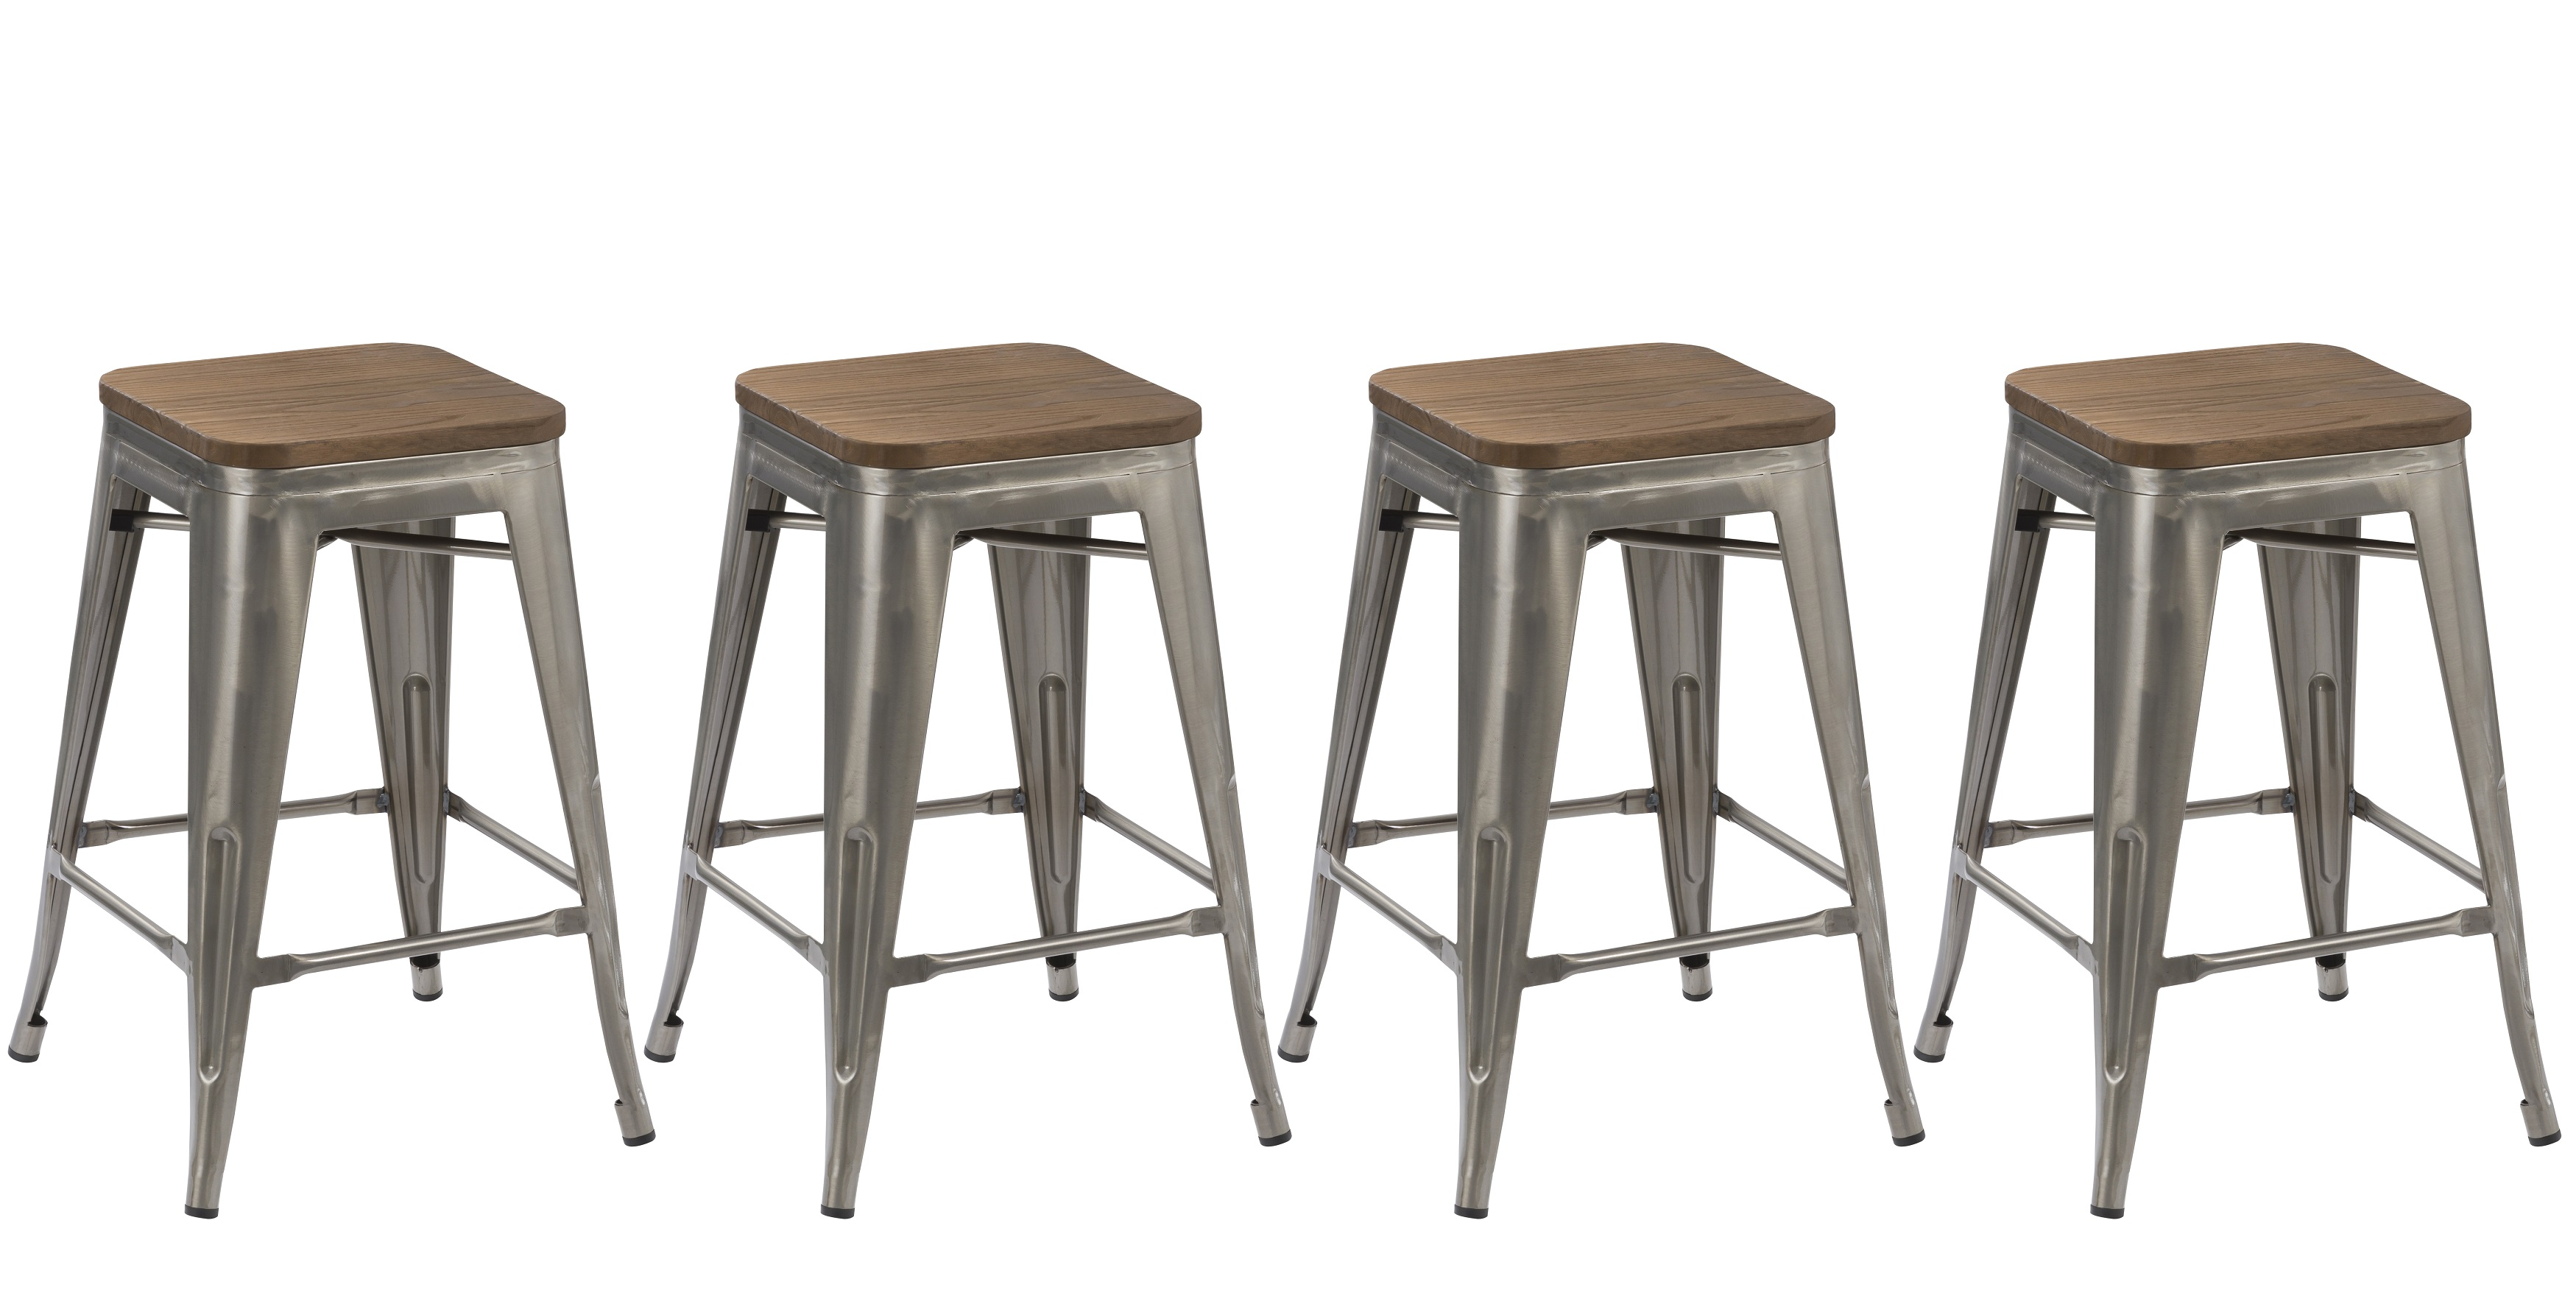 BTEXPERT® 24-inch Industrial Stackable Metal Vintage Antique Style Clear Brush Distressed Counter Bar Stool Modern wood top seat (Set of 4 barstool) ...  sc 1 st  Walmart & BTEXPERT® 24-inch Industrial Stackable Metal Vintage Antique Style ... islam-shia.org